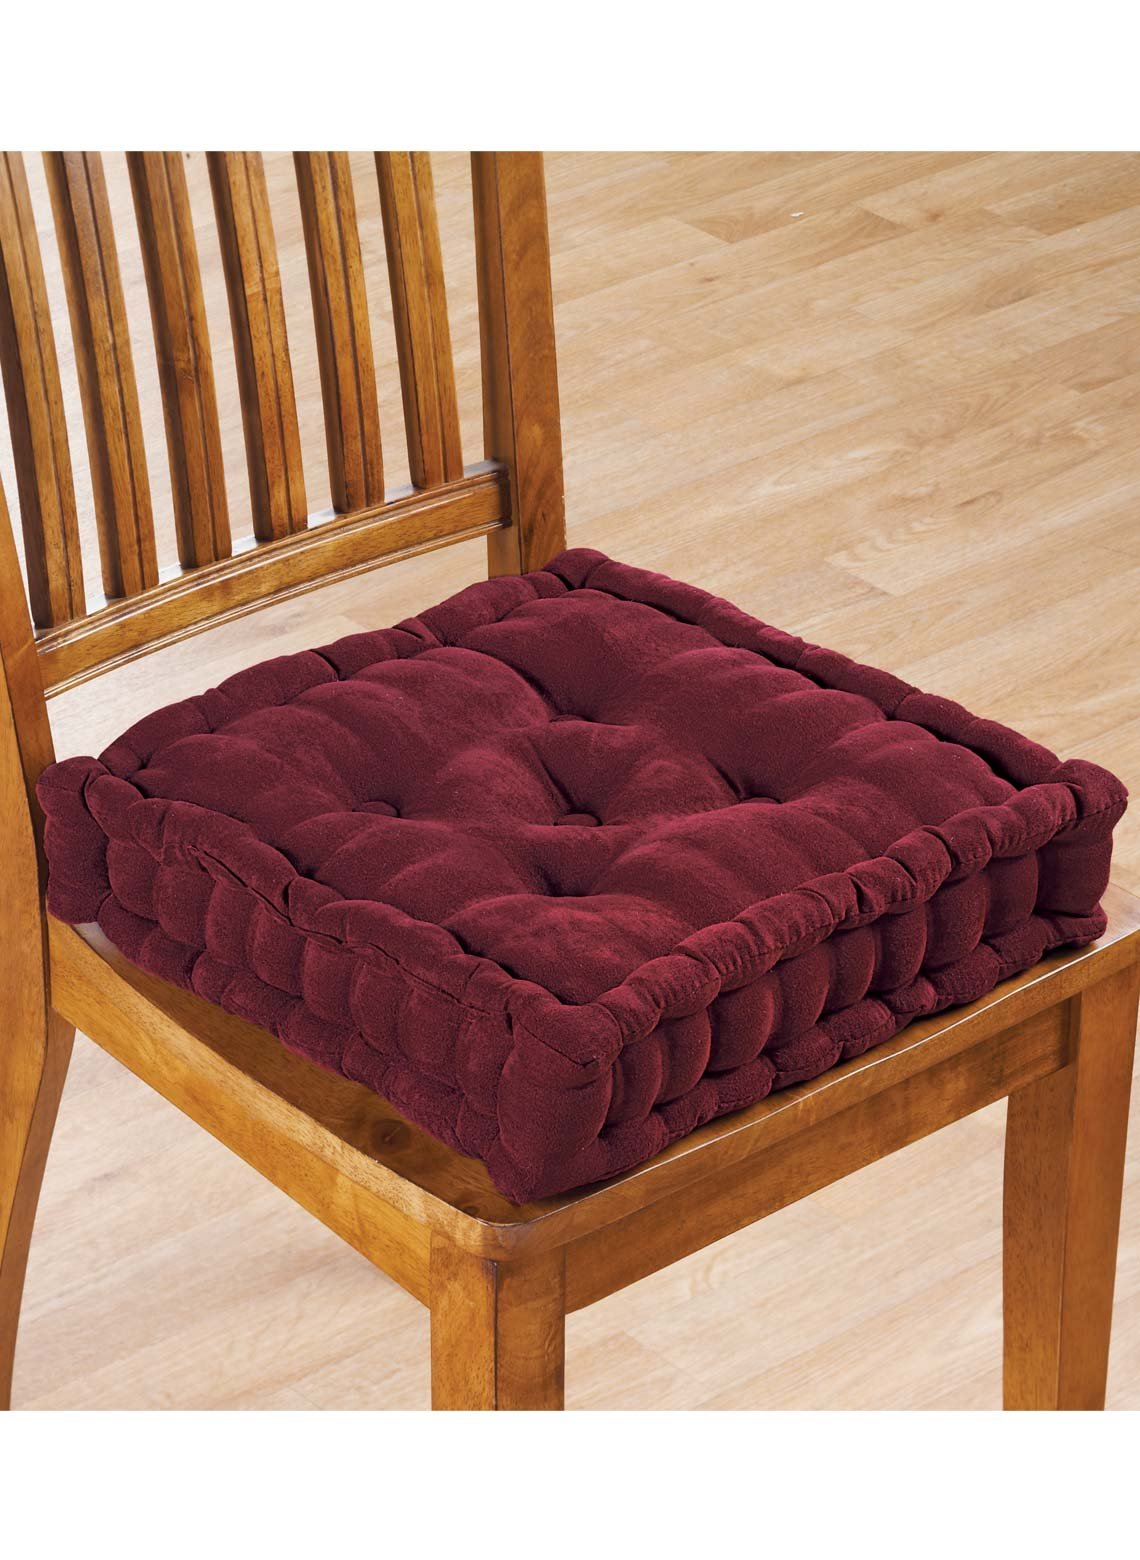 Tufted Booster Cushion, Color Burgundy